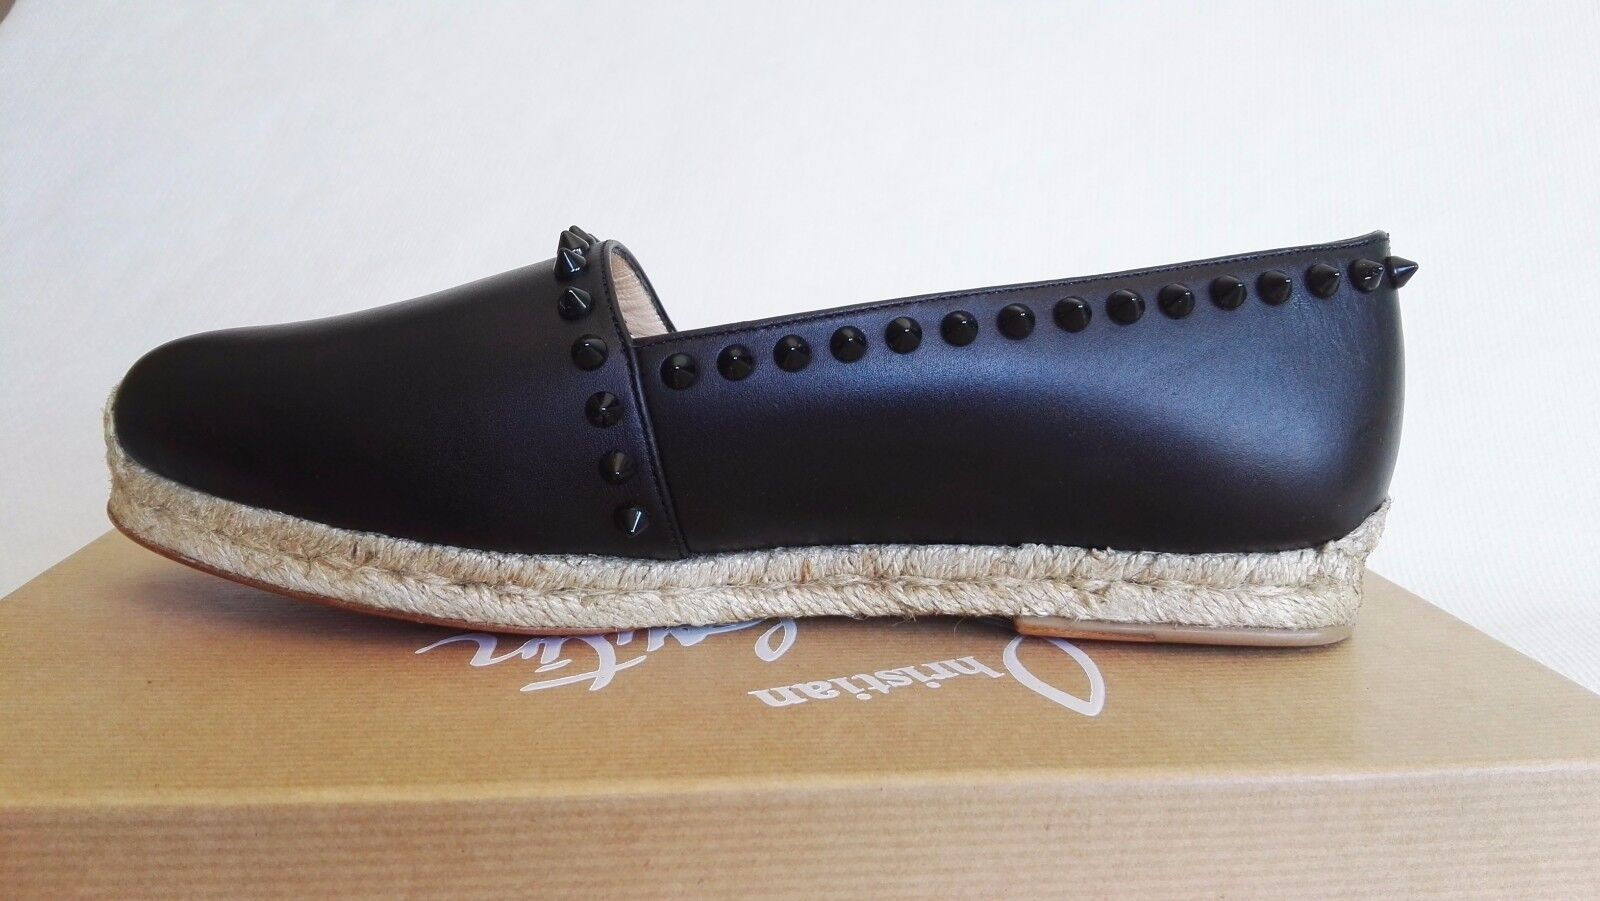 CHRISTIAN LOUBOUTIN BLACK ARES 34 4 LEATHER ESPADRILLES FLATS FLATS FLATS WOMAN SHOES SPRING 4614bf